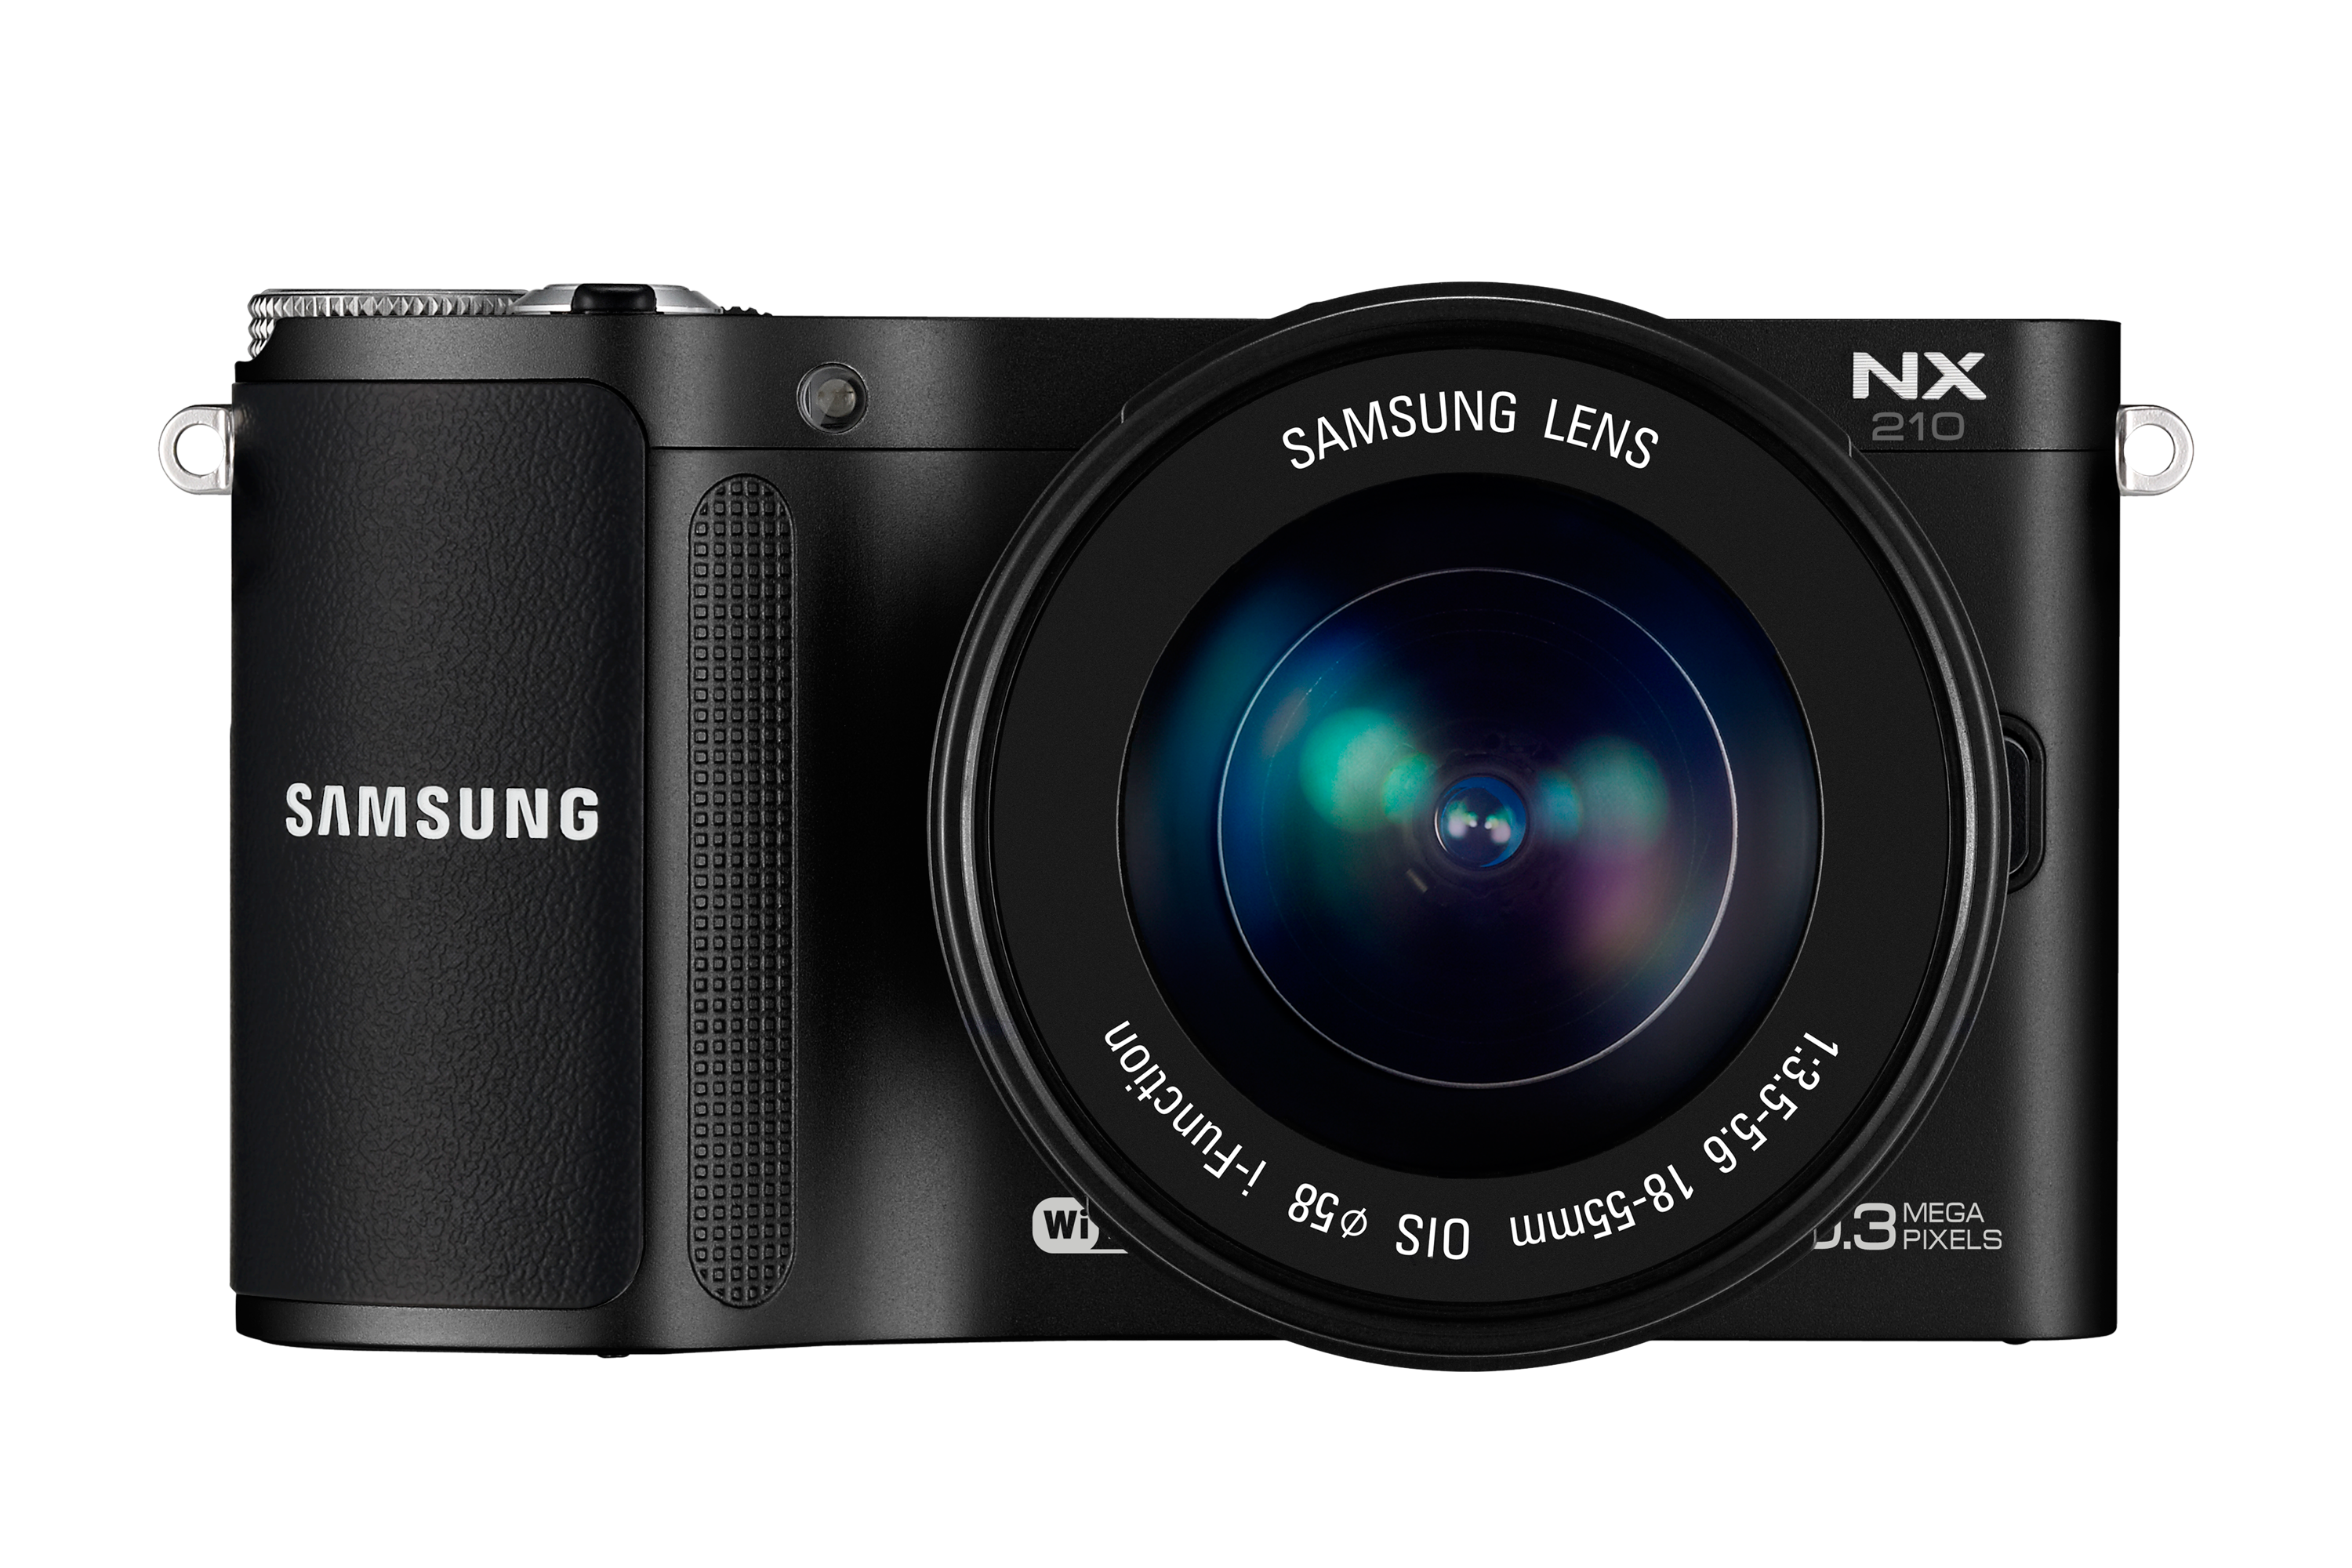 NX210 20.3MP NX SMART Digital Camera